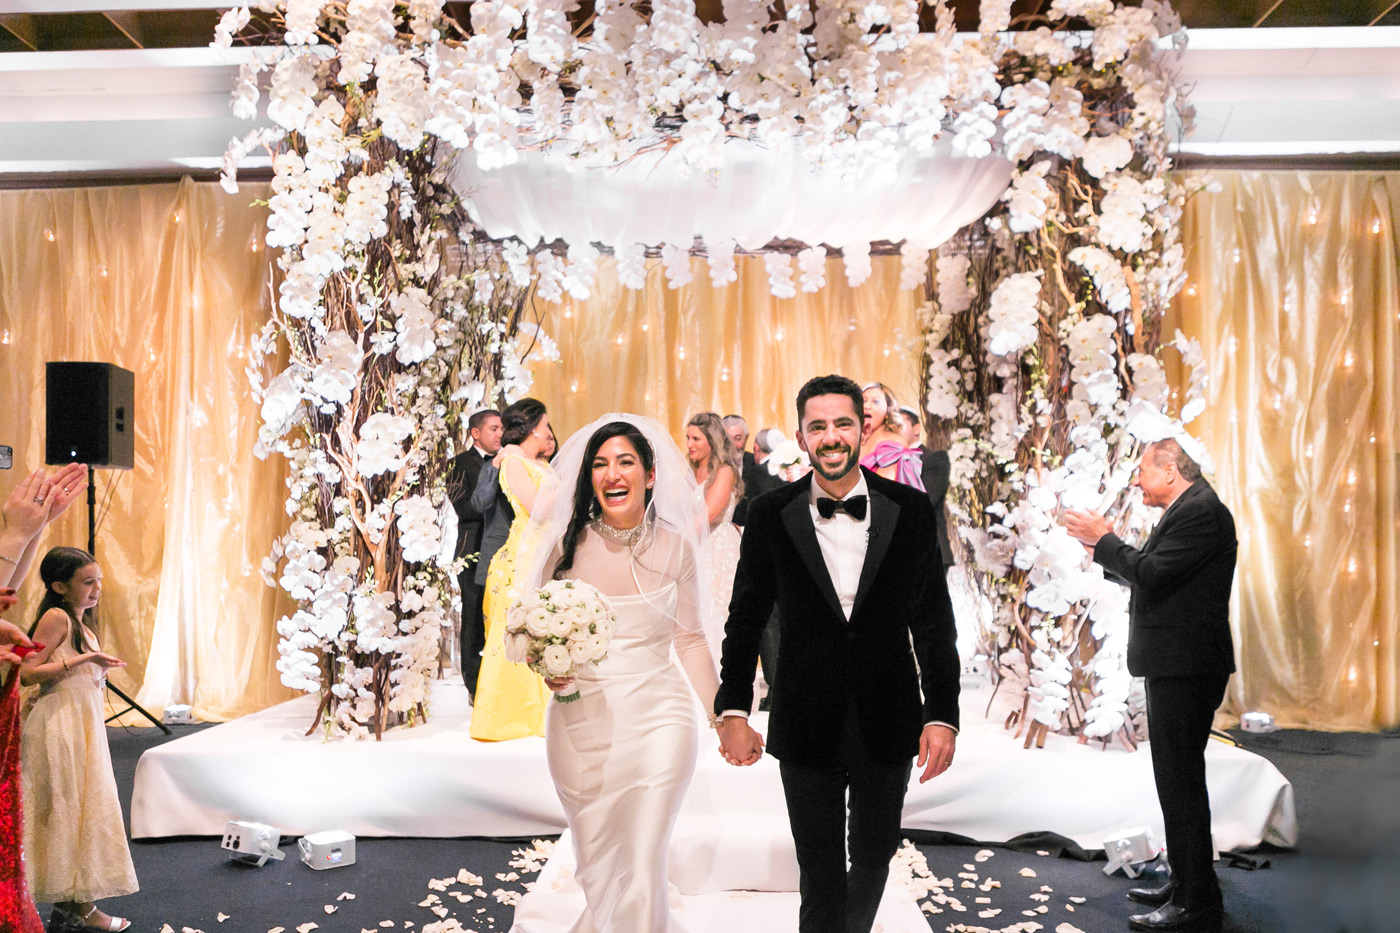 Couple smiles at camera as they walk back down aisle after wedding ceremony.